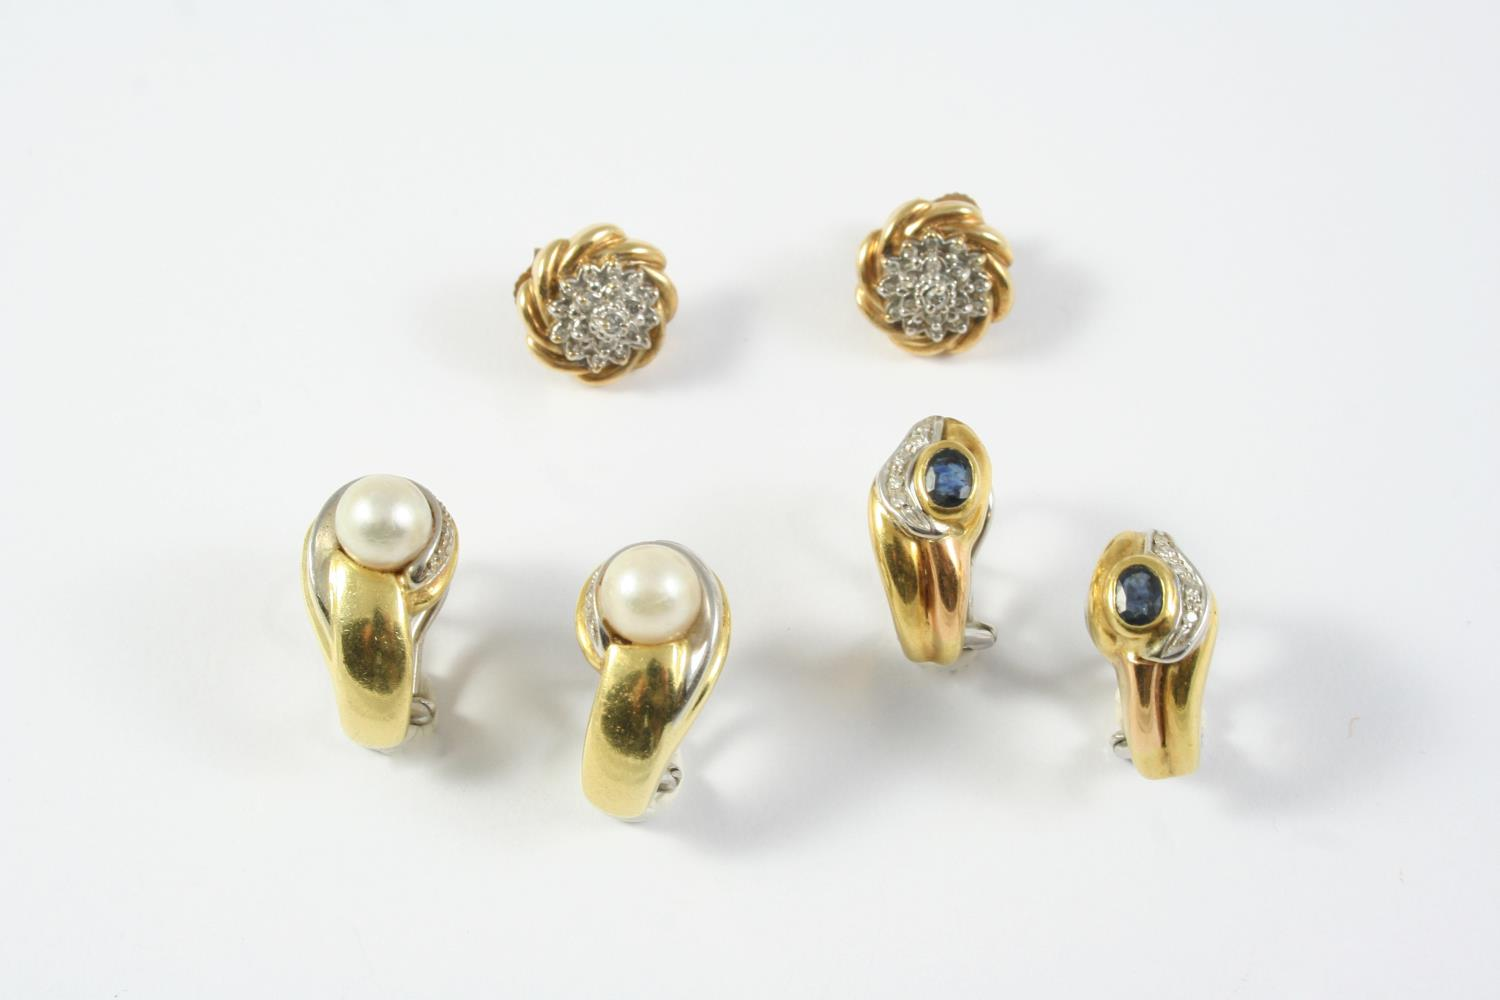 A PAIR OF SAPPHIRE, DIAMOND AND 18CT GOLD EARRINGS each earring set with an oval-shaped sapphire and